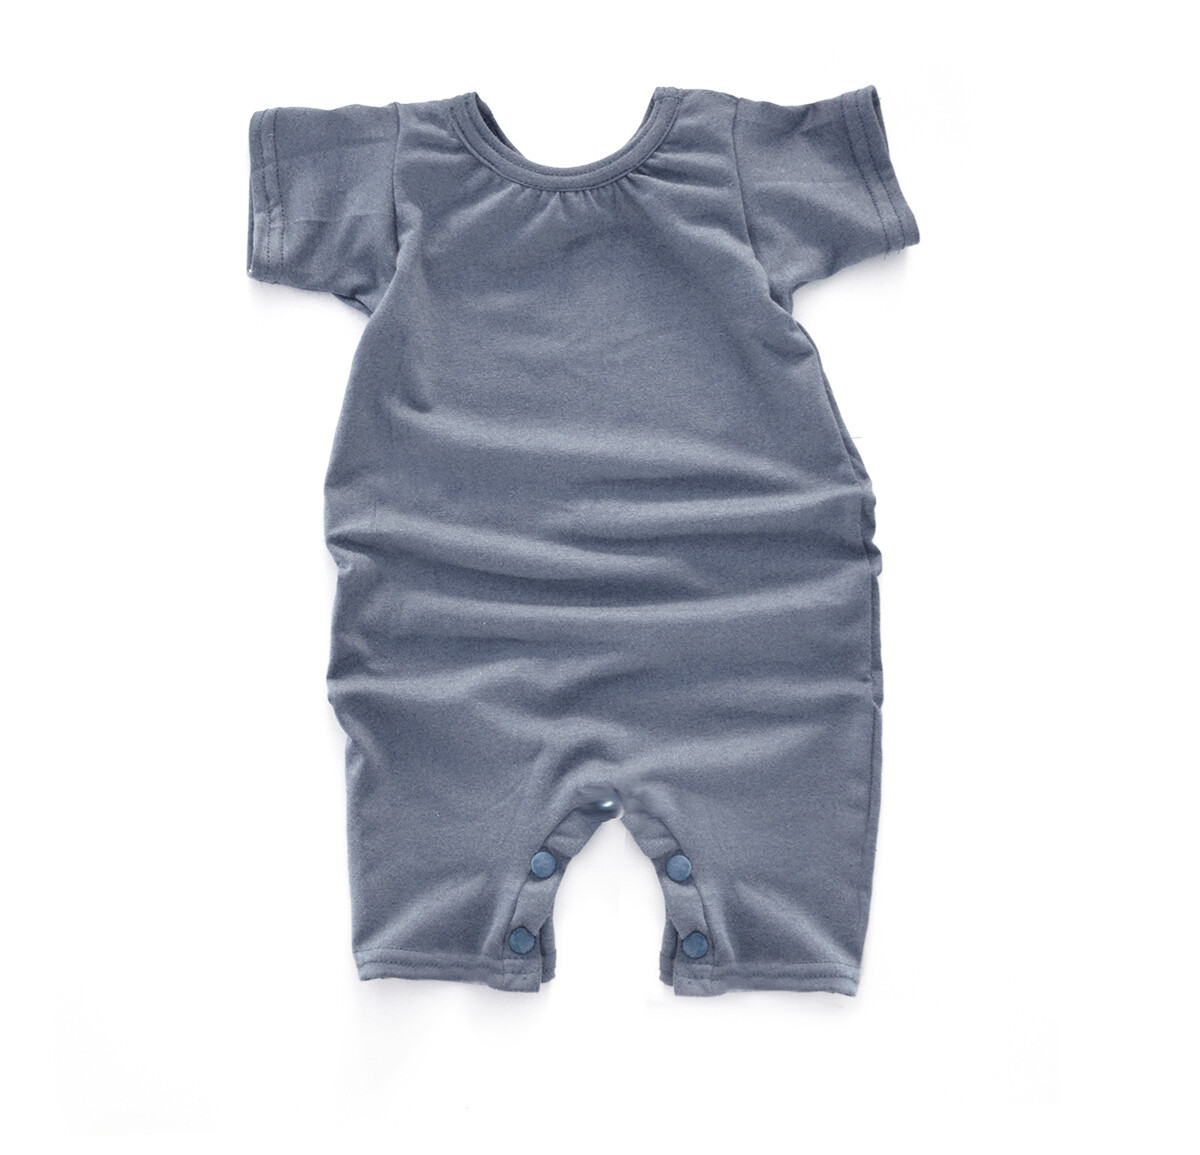 Little Sprout Short Sleeve Baby Romper - Tencel - Stone